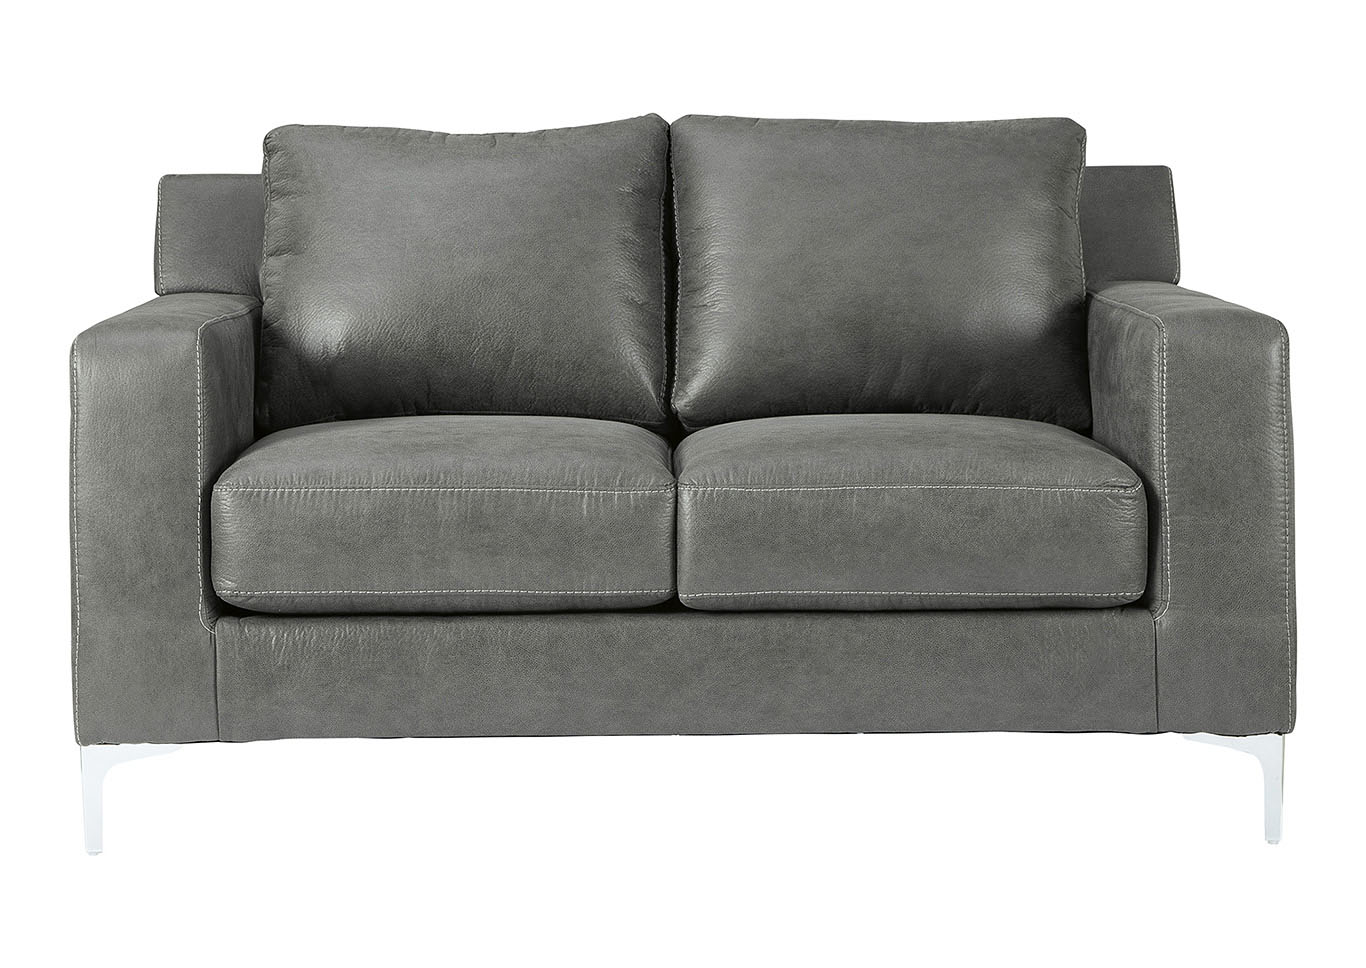 Ryler Charcoal Loveseat,Signature Design By Ashley